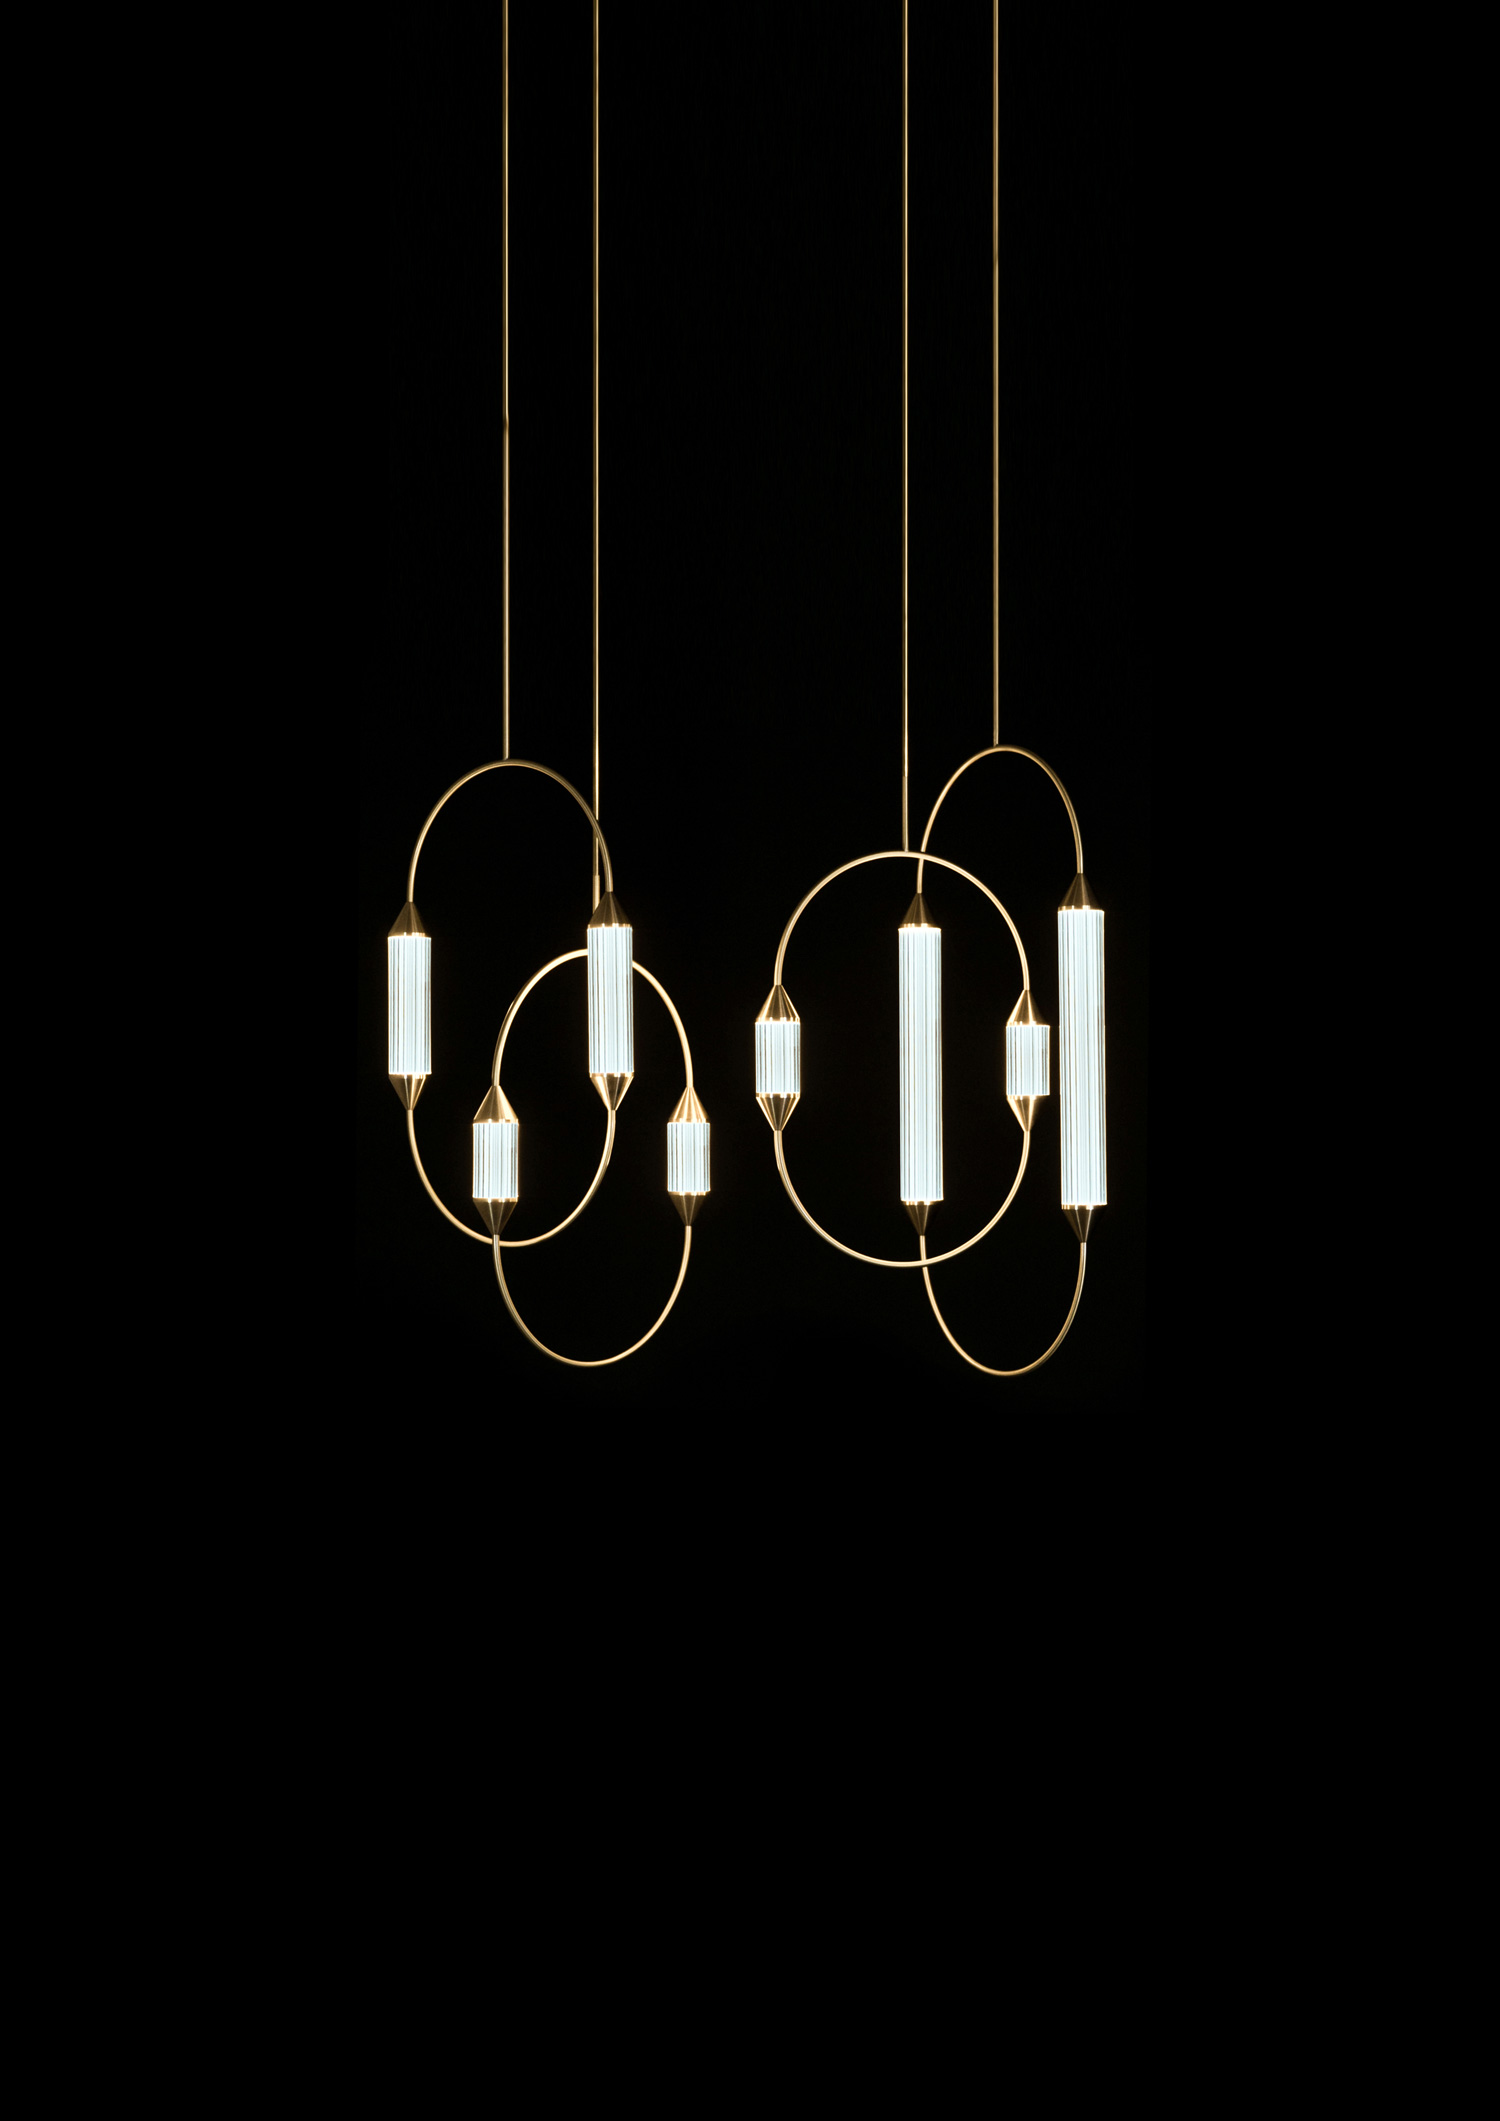 Giopato_Coombes_Cirque_Chandelier_3_Medium_2_Ph_JonBronxl.jpg